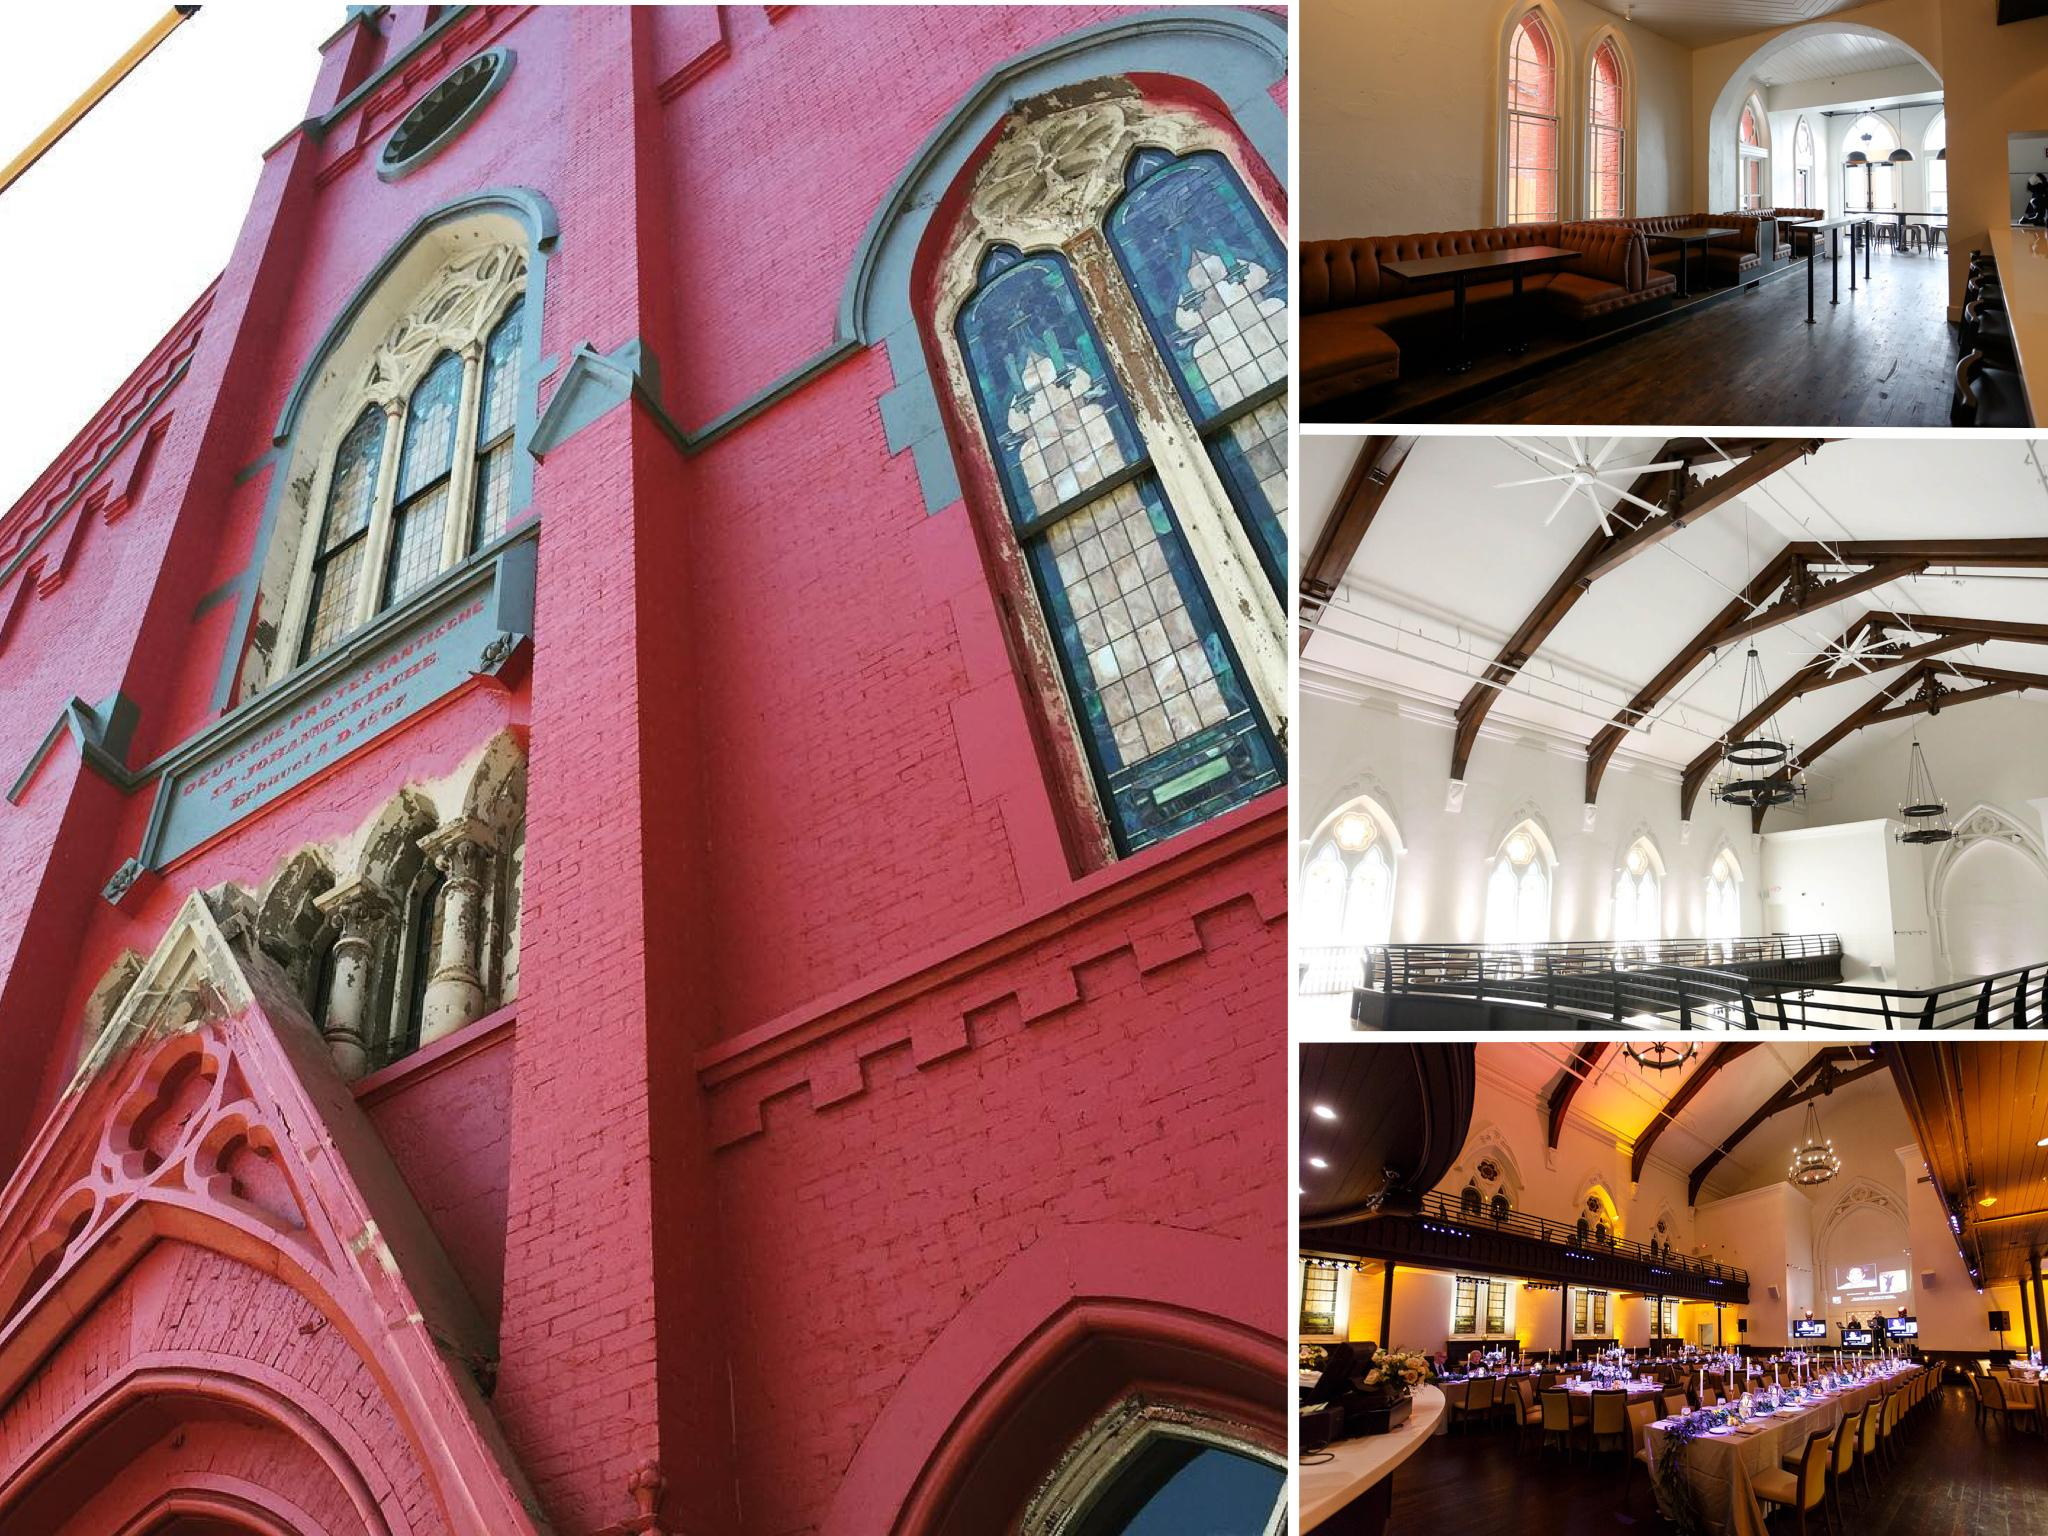 THE TRANSEPT (After) / ADDRESS: 1205 Elm Street (45202) / CREDIT: $490,000 / PREVIOUSLY: St. John's Church / Images courtesy Leah Zipperstein and The Transept